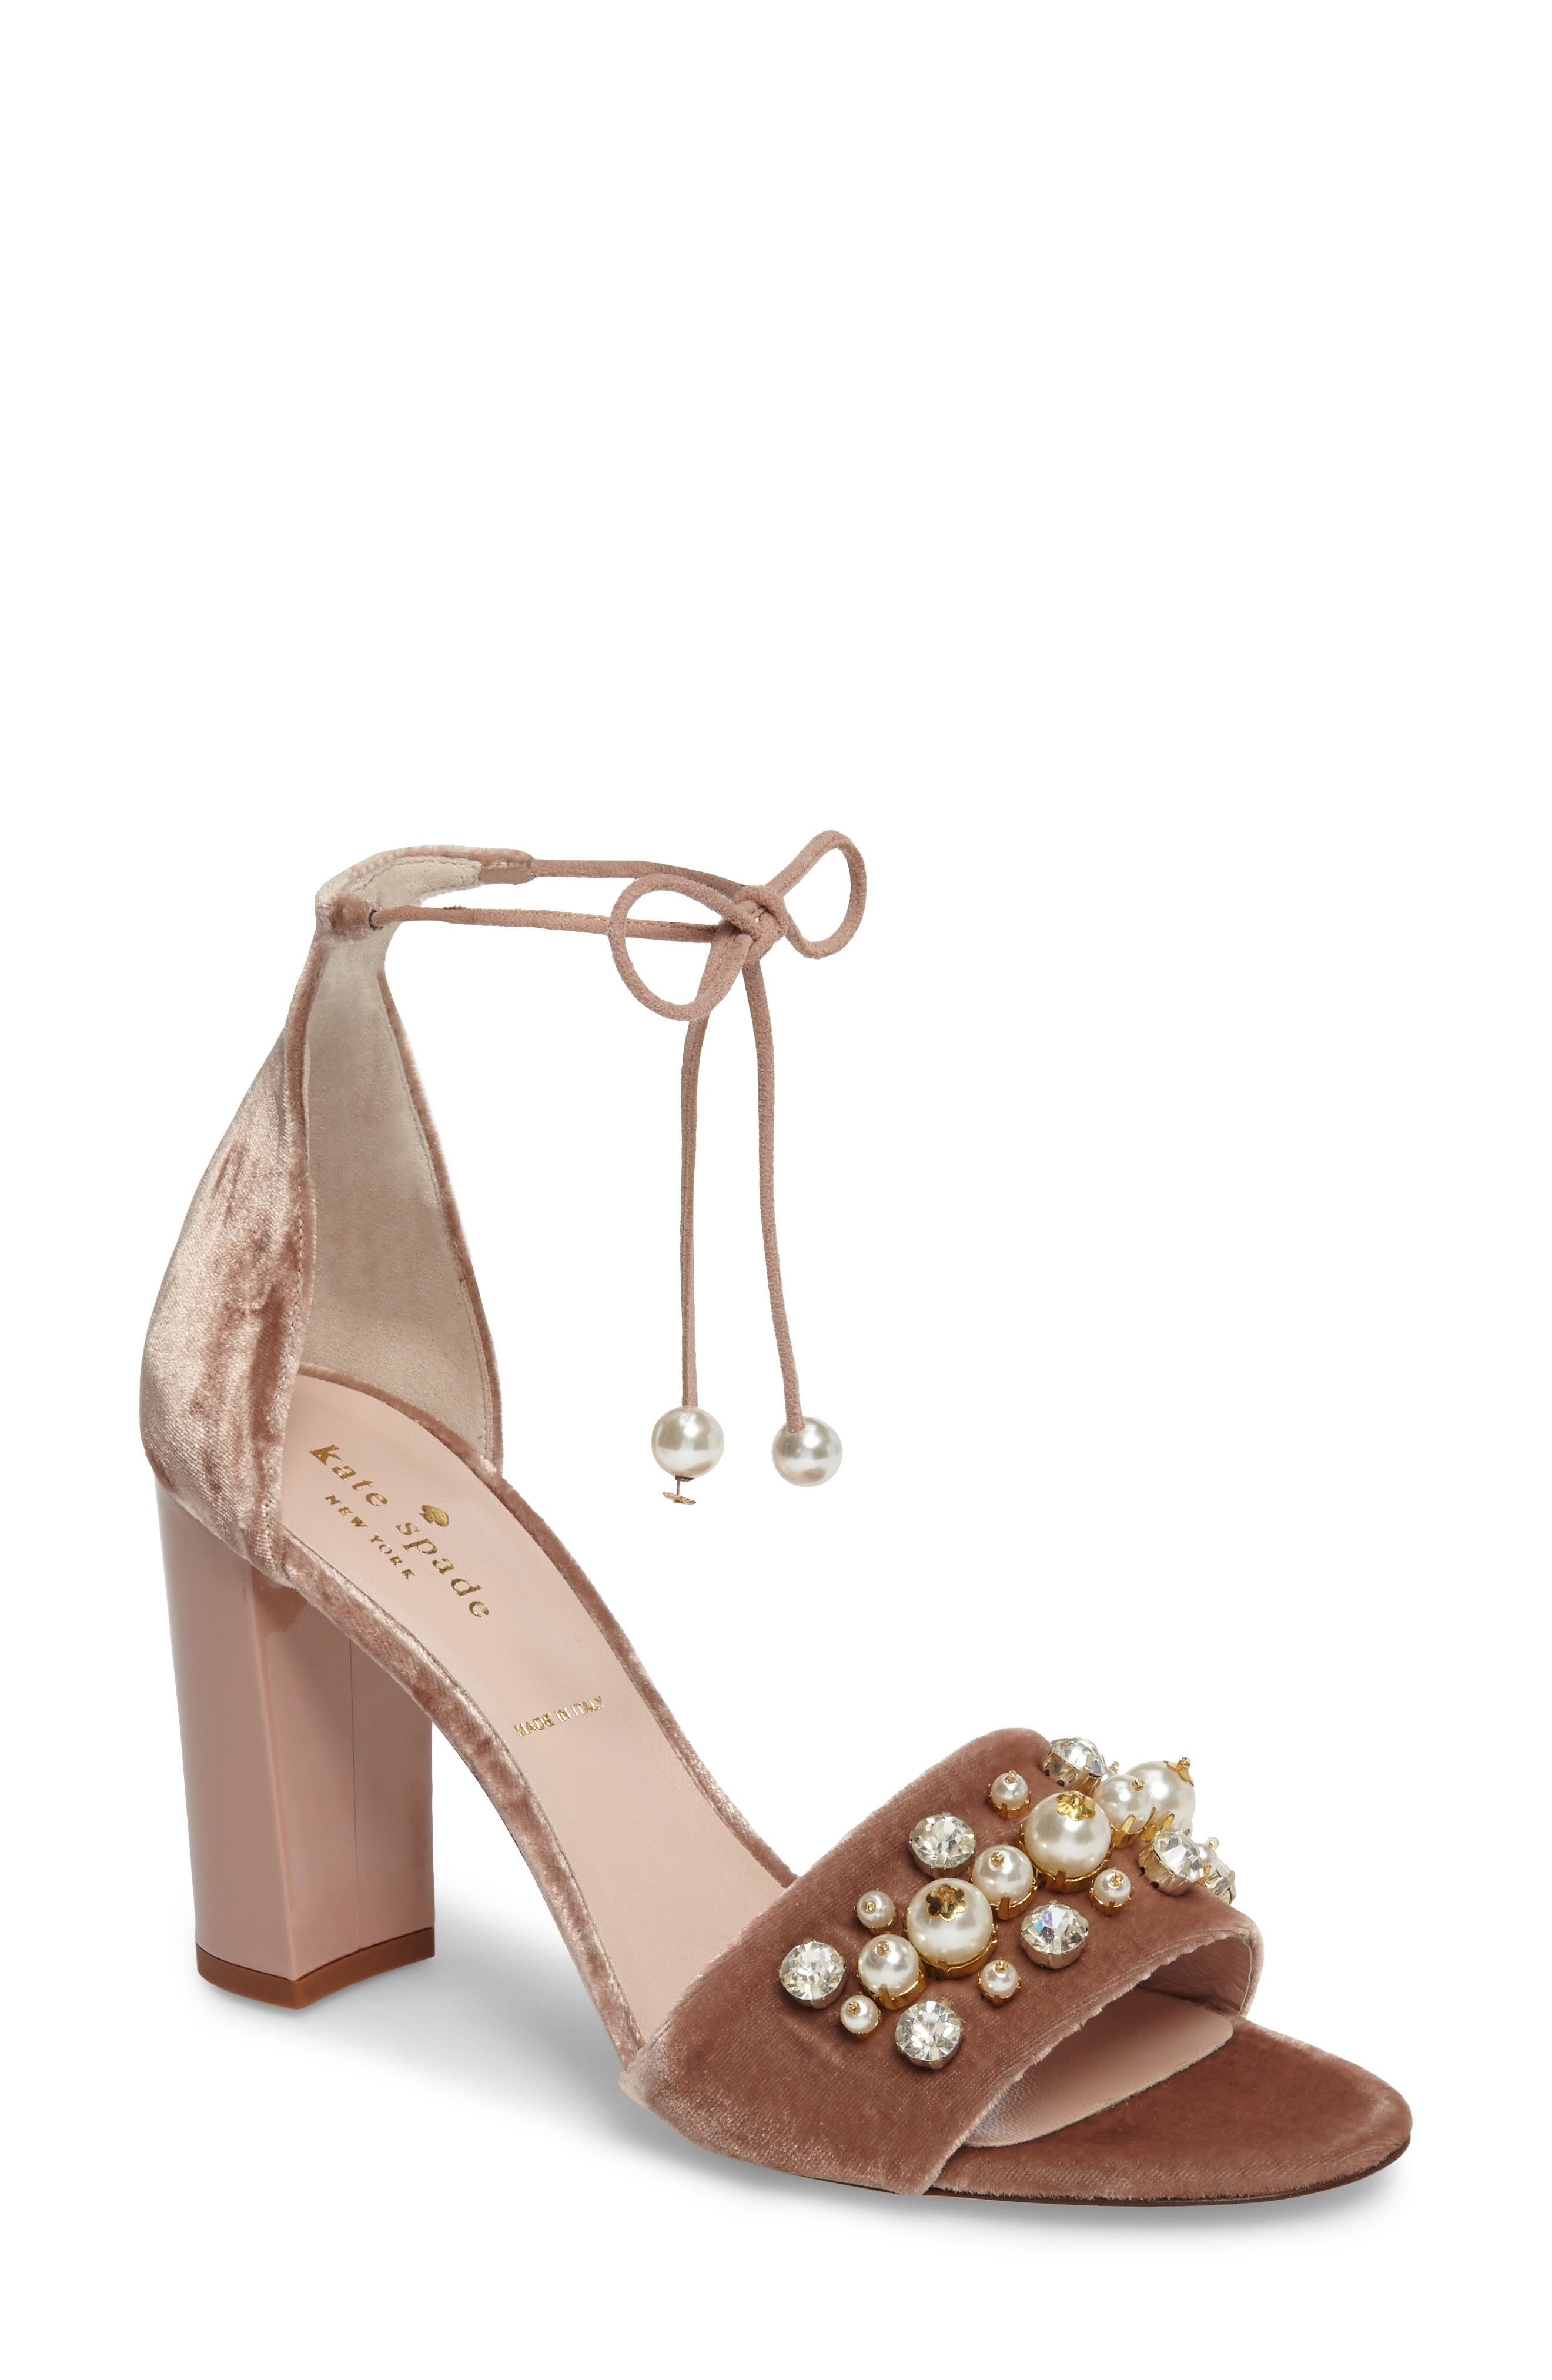 Kate Spade New York Embellished Slingback Sandals cheap sale best place official cheap online buy cheap enjoy BWn2q87AH